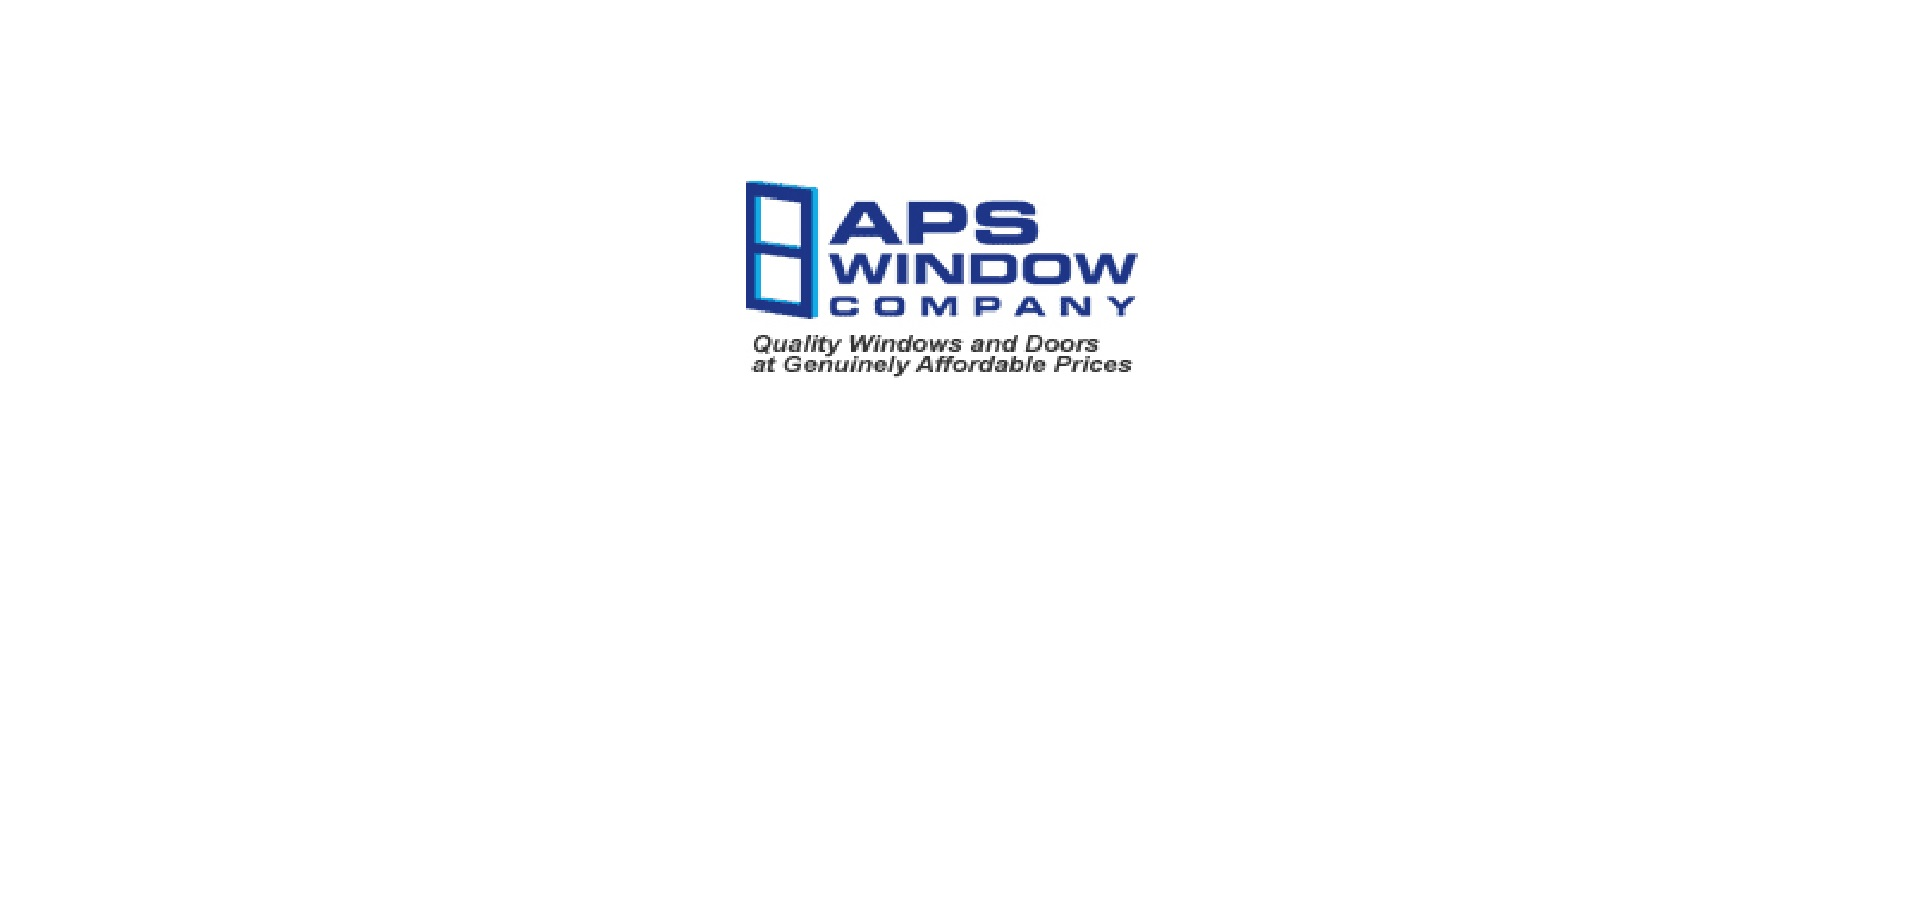 APS WINDOW COMPANY